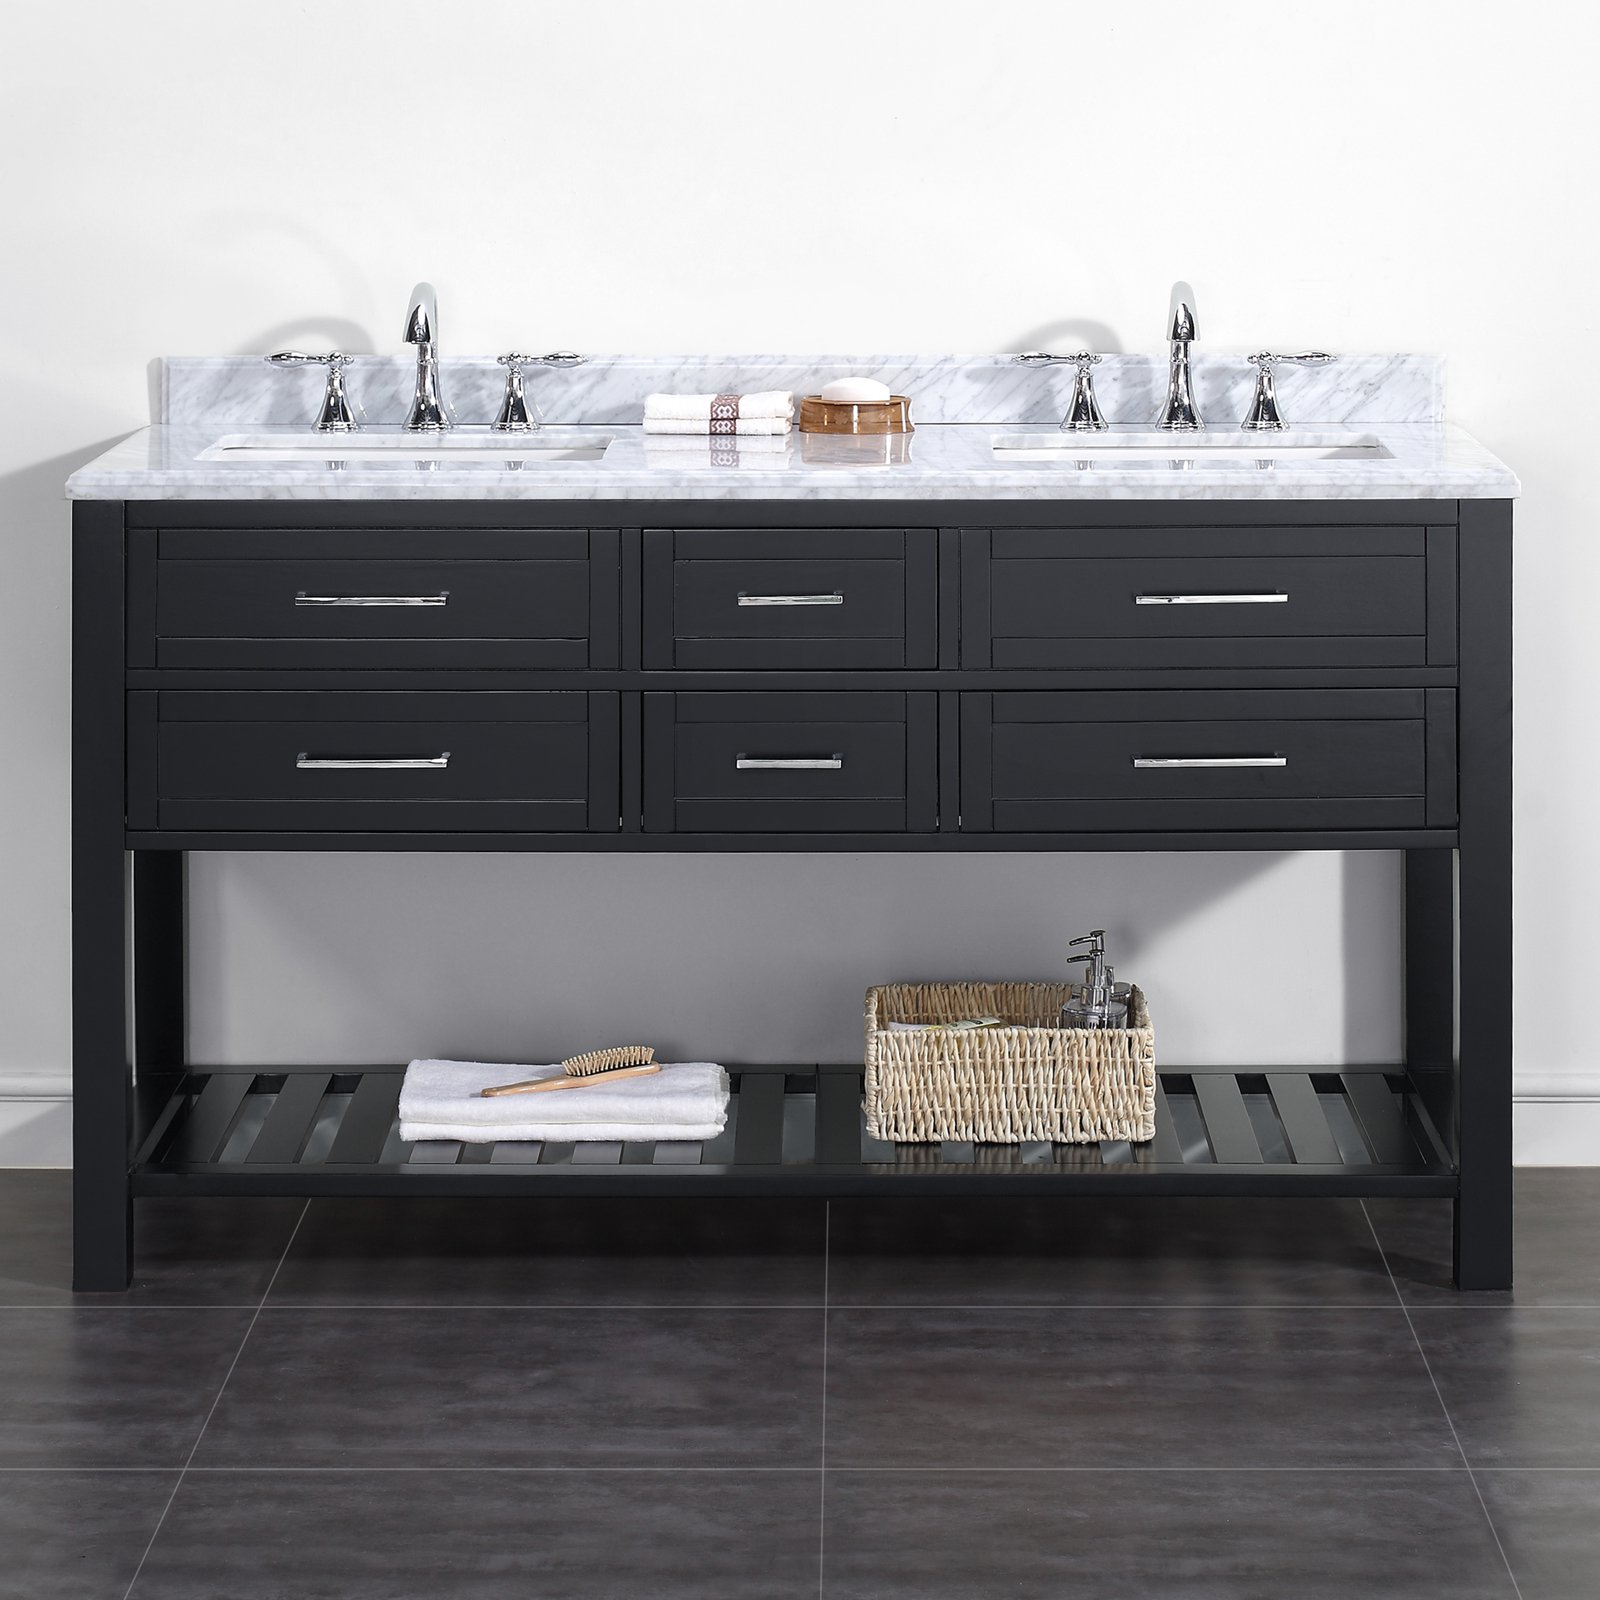 OVE Decors Sarasota 60 in. Double Bathroom Vanity